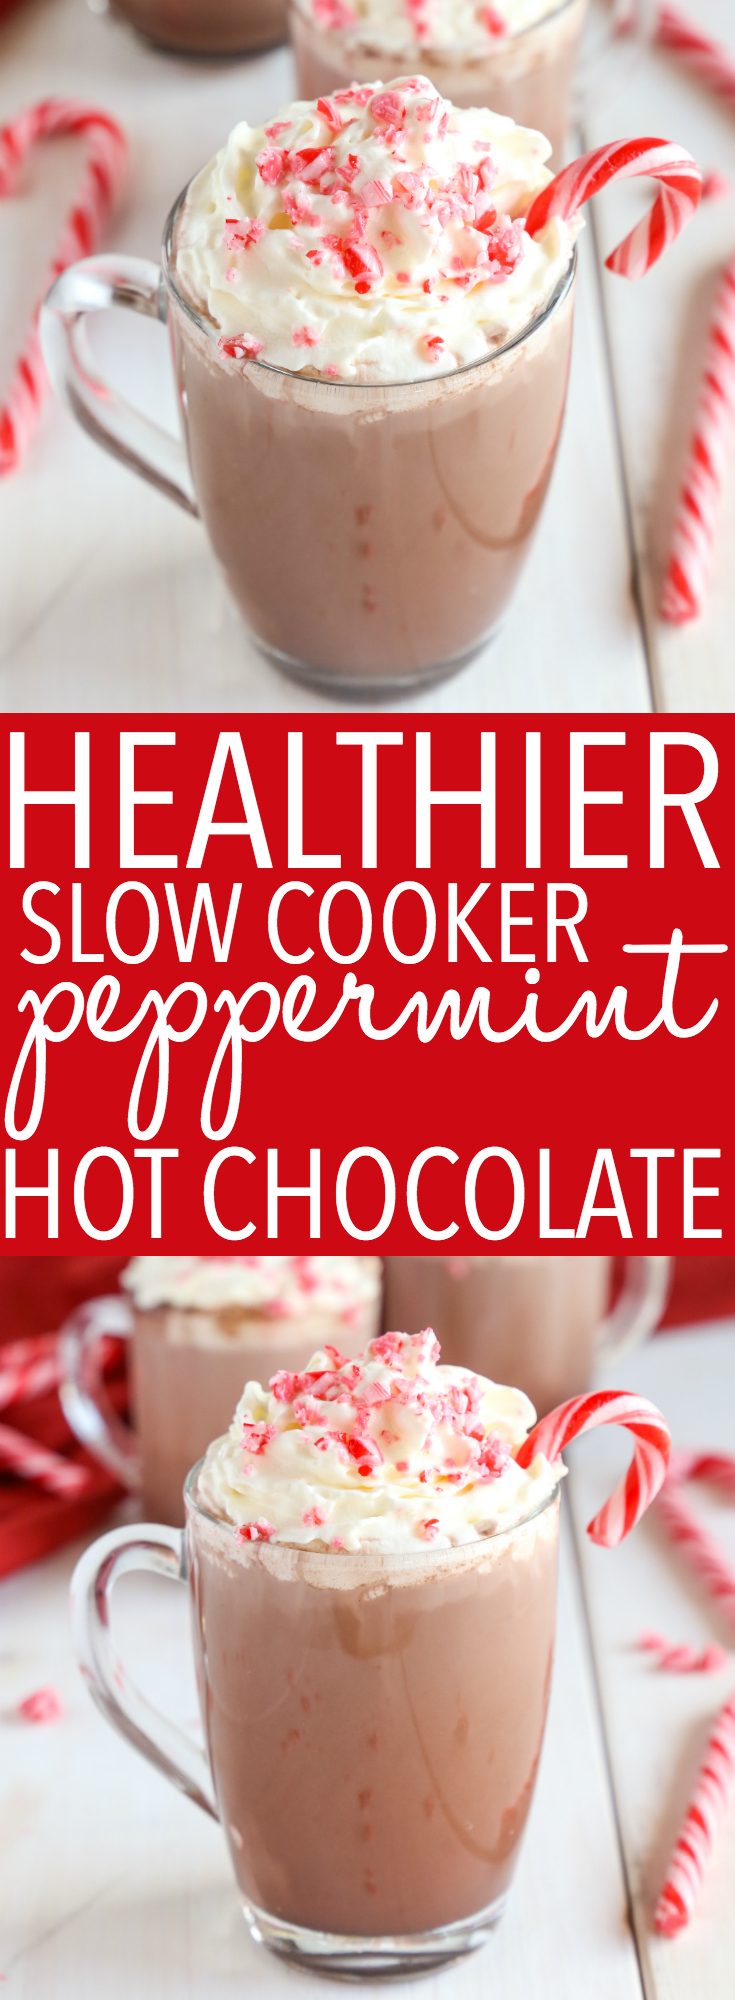 This Healthier Slow Cooker Peppermint Hot Chocolate is the perfect kid-friendly warm drink recipe for those cold winter days - made with only 4 ingredients! Recipe from thebusybaker.ca! #hotchocolate #peppermint #drink #slowcooker #crockpot #kidfriendly #family #winter #hotdrink #homemade #recipe #starbucks #copycat via @busybakerblog